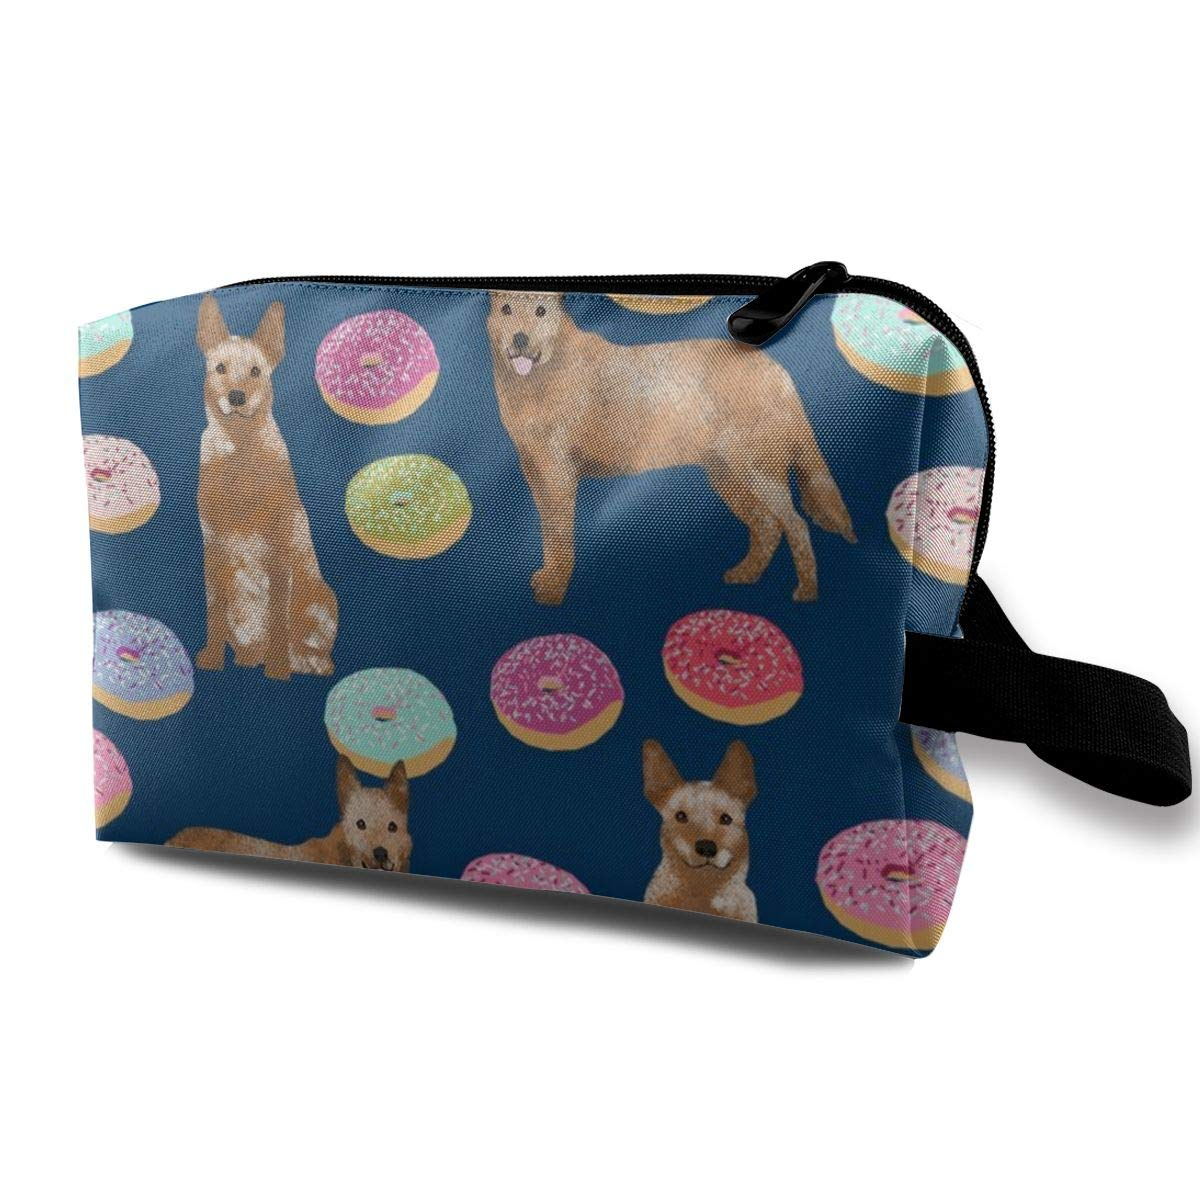 5fc03d20a386 Makeup Bag Portable Travel Cosmetic Bag Australian Cattle Dog Donuts -  Donuts, Dog Donut, Food, Cute Dog, Pet Friendly - Red Heeler - Navy Mini  Makeup ...